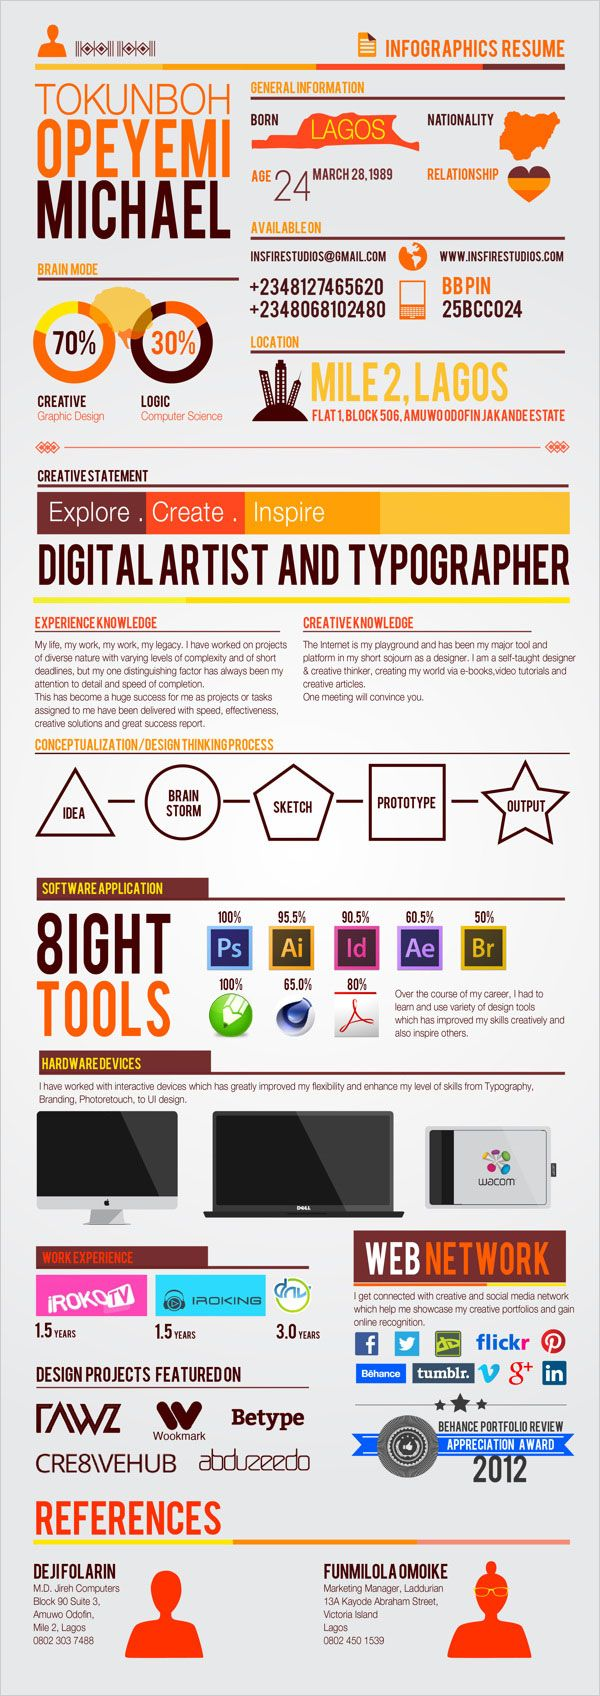 47 best Resume images on Pinterest | Resume ideas, Cv design and ...